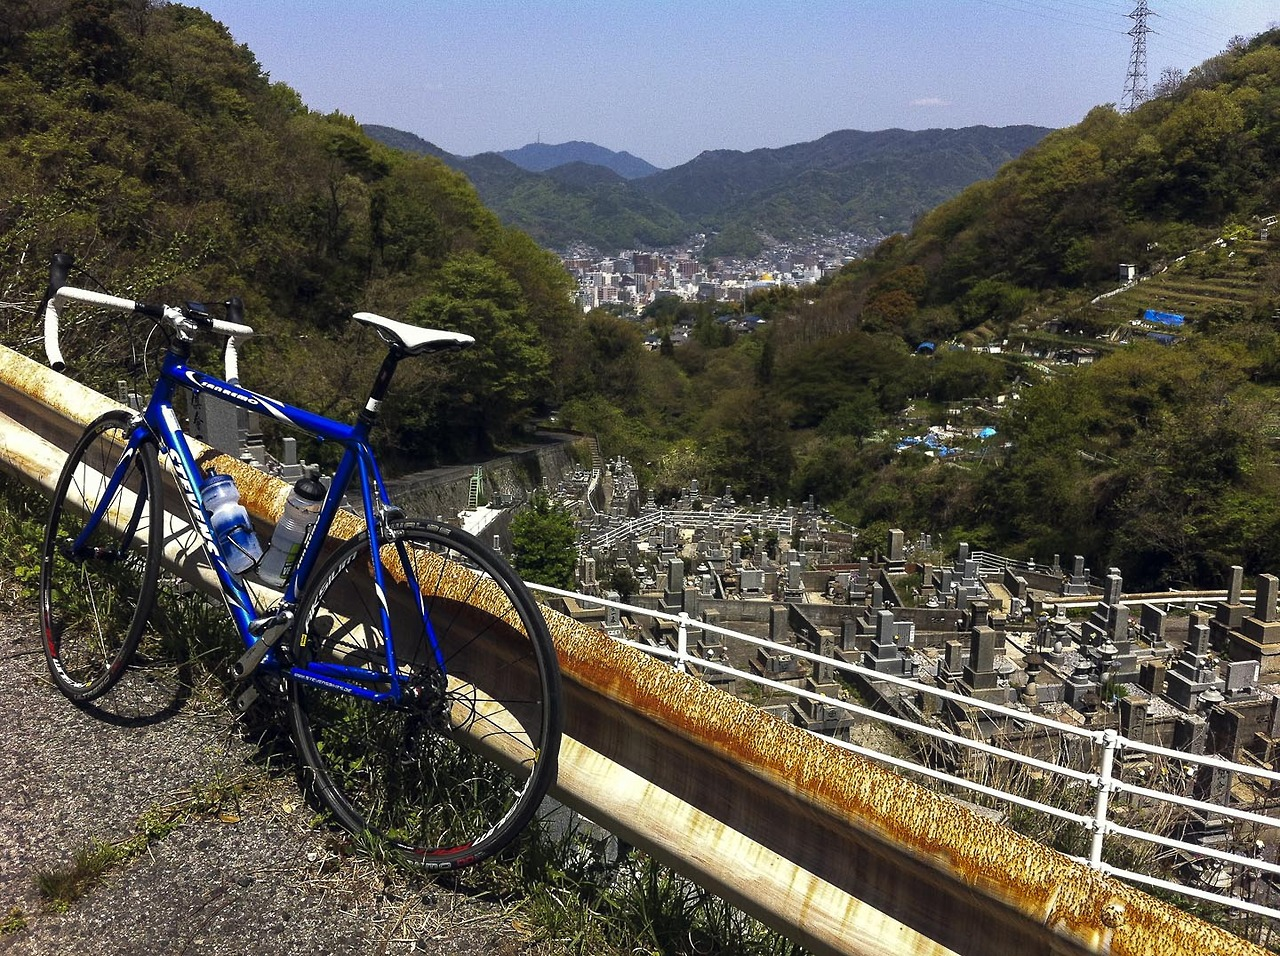 Climbing the mountains of Ondo near Kure. 30 km outside of Hiroshima. 4 km of 10% average ascent. Above 20% in maximum. Absolutely crazy for a flatland guy like me. Love it! Will be back!